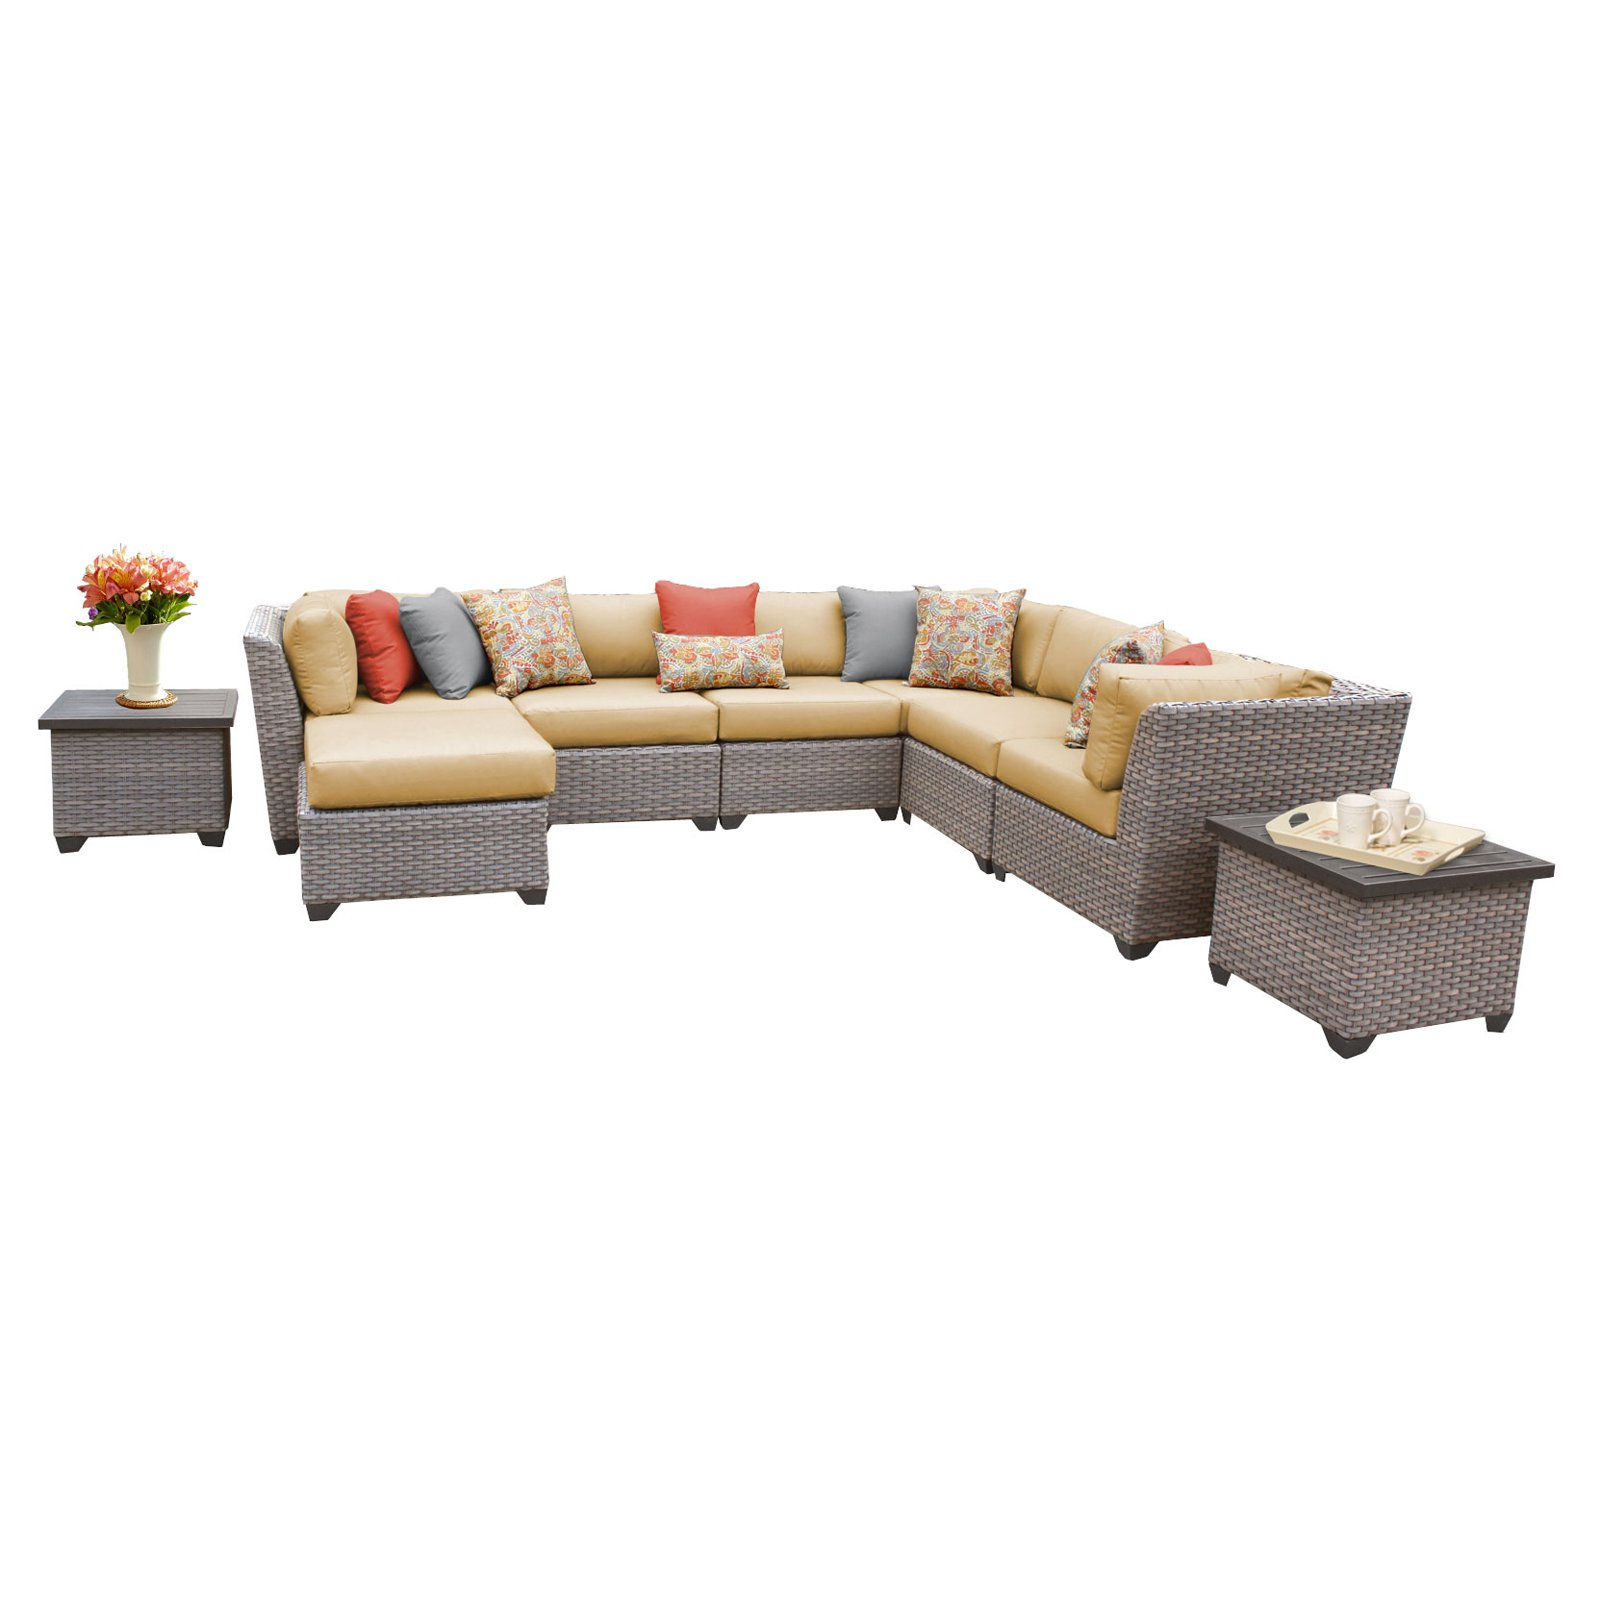 TK Classics Florence Wicker 9 Piece Patio Conversation Set with Ottoman and 2 Sets of Cushion Covers by Delacora